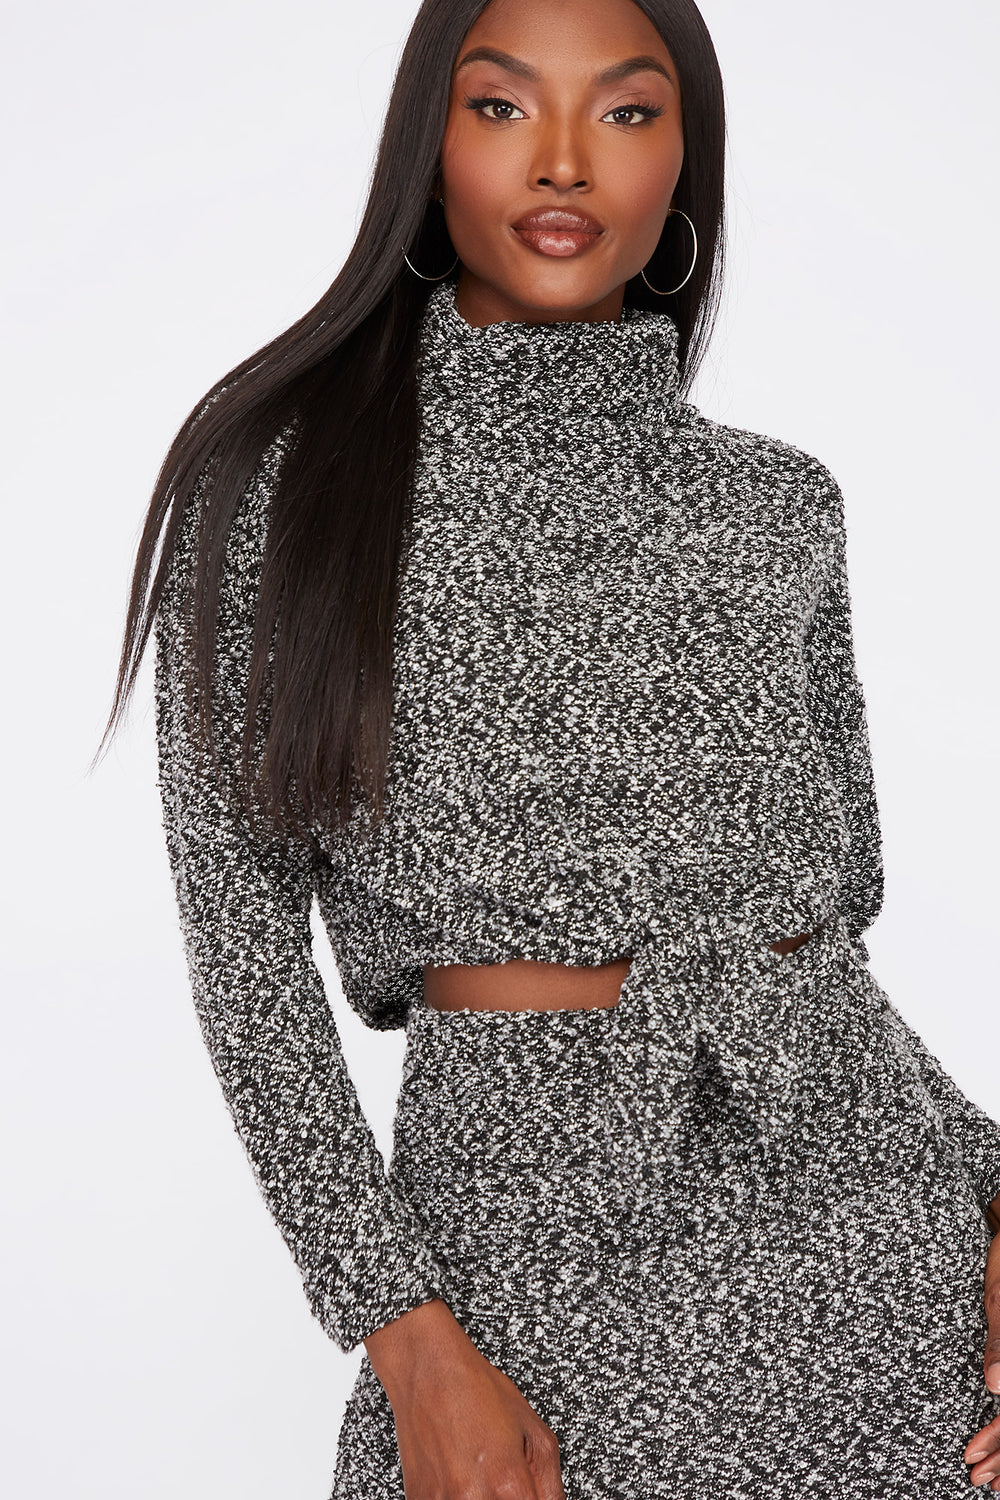 Textured Knit Cowl Neck Cropped Sweater Black with White